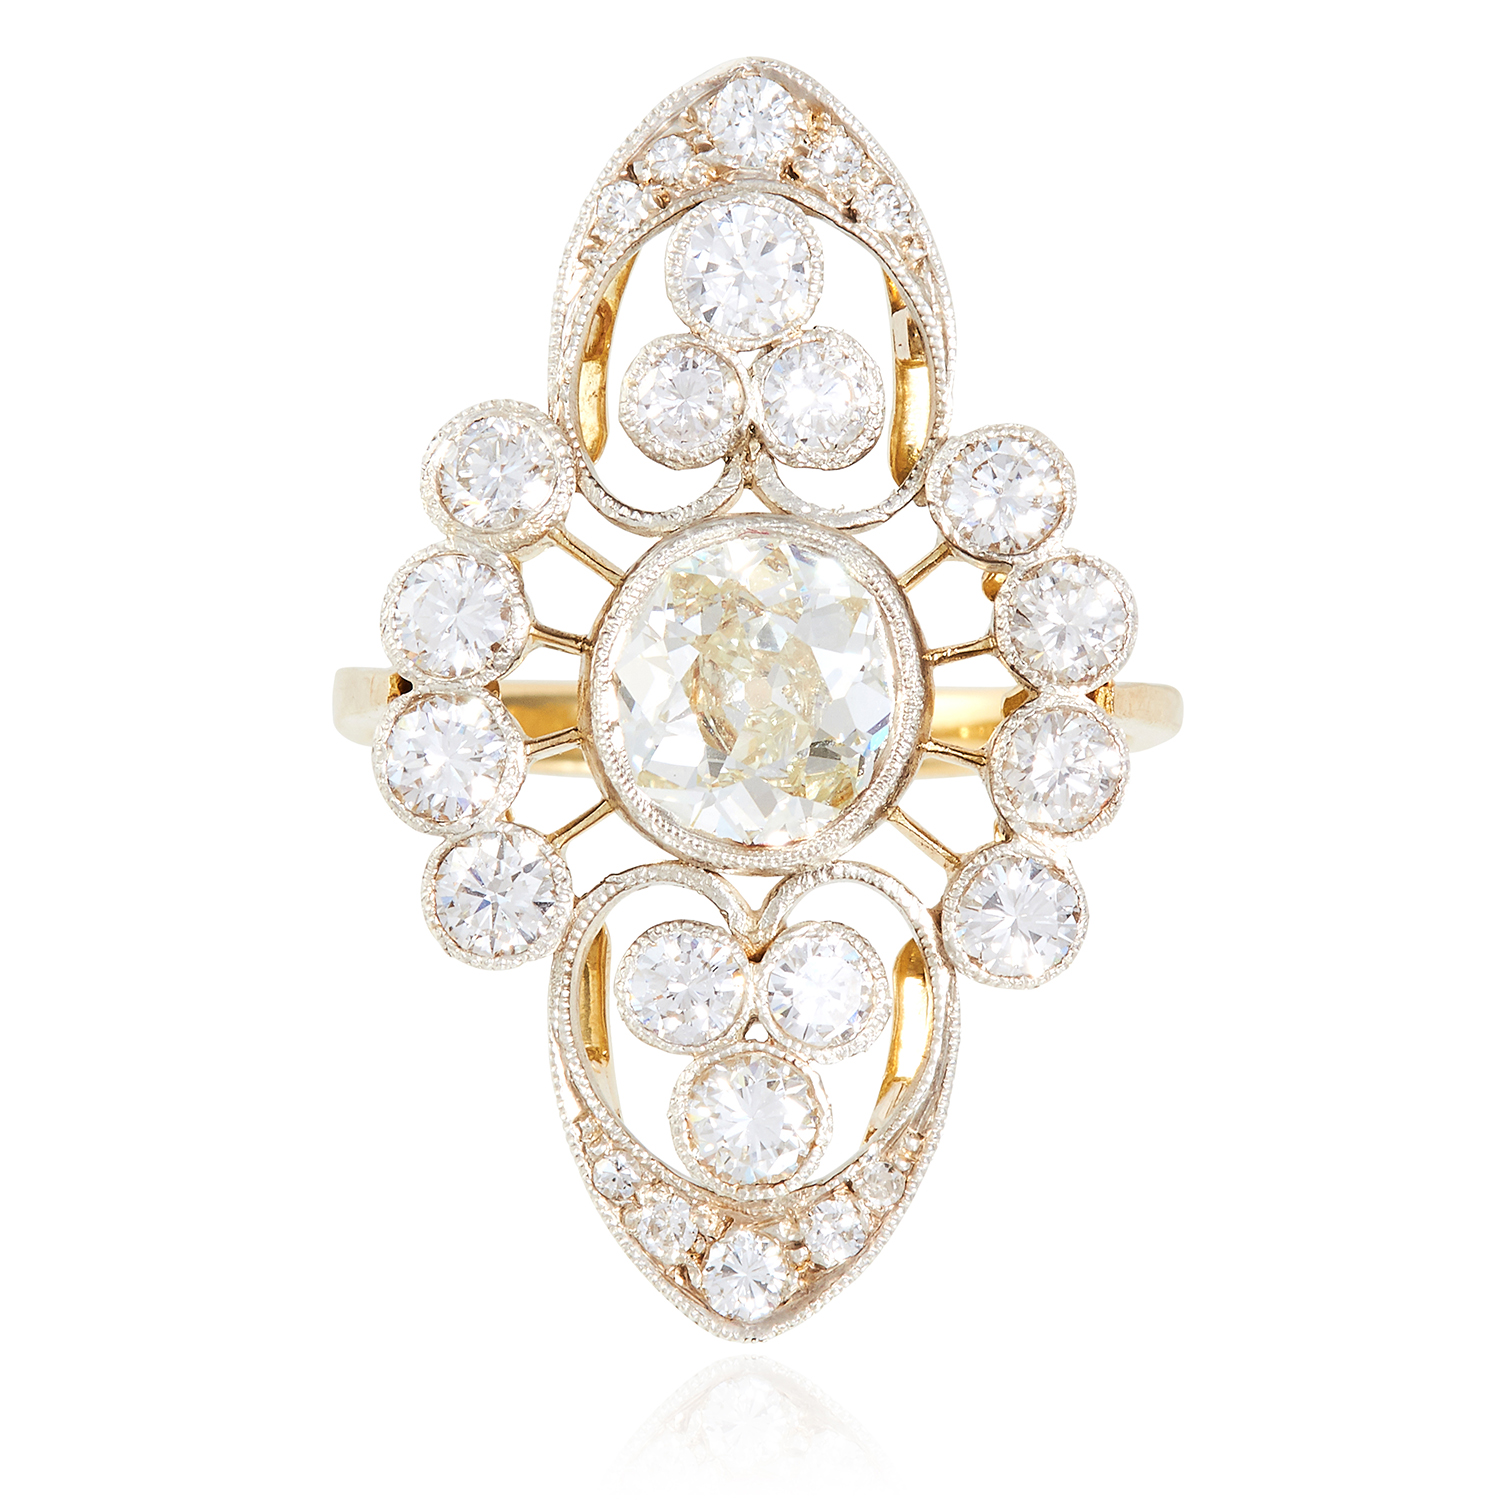 Los 41 - A 4.07 CARAT DIAMOND DRESS RING in yellow gold, the open scrolling frame is set with a central old